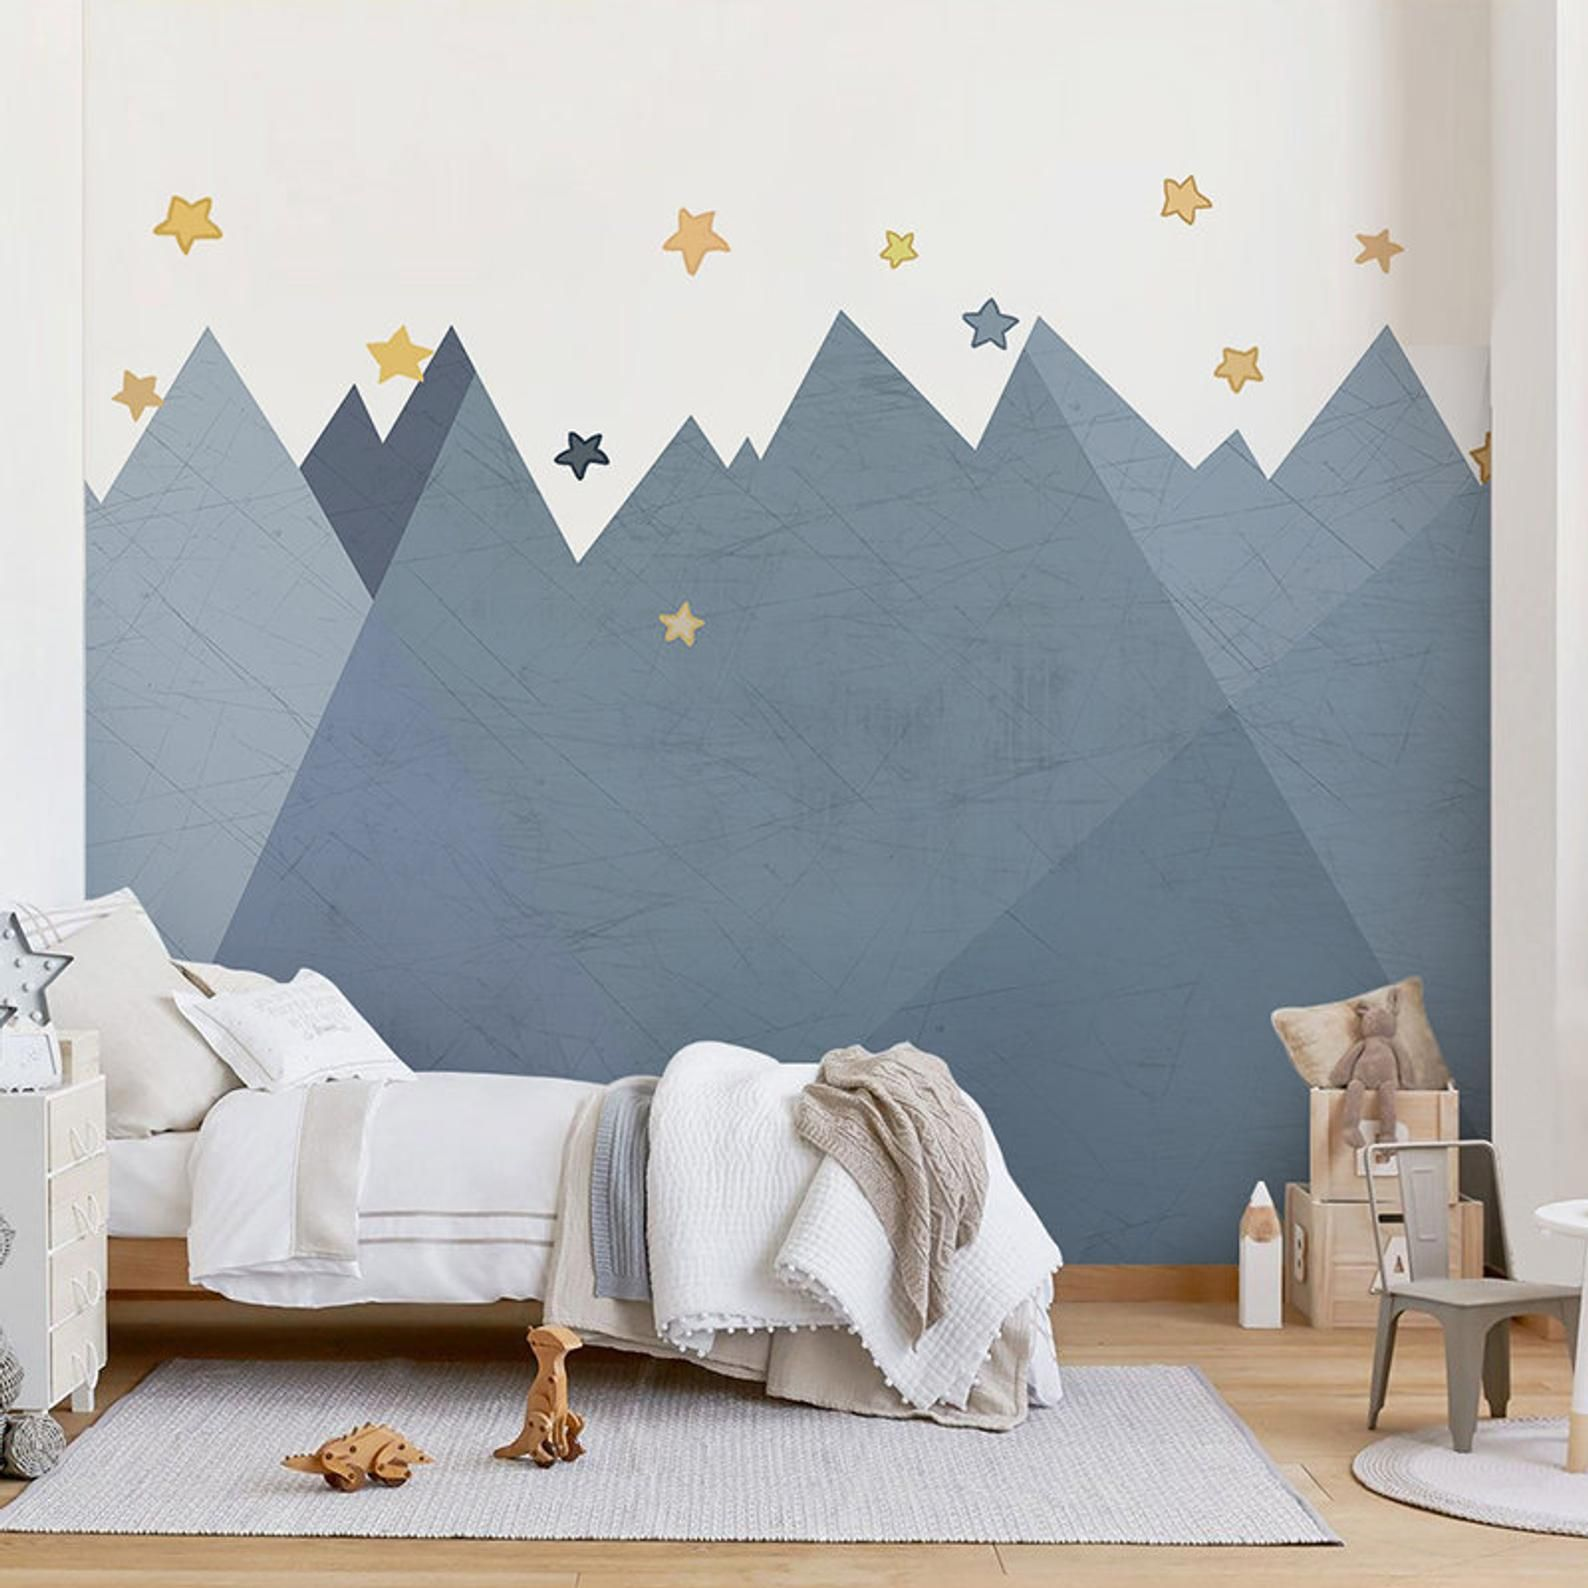 Ombre Mountains Mural Wallpaper Geometry Mountain